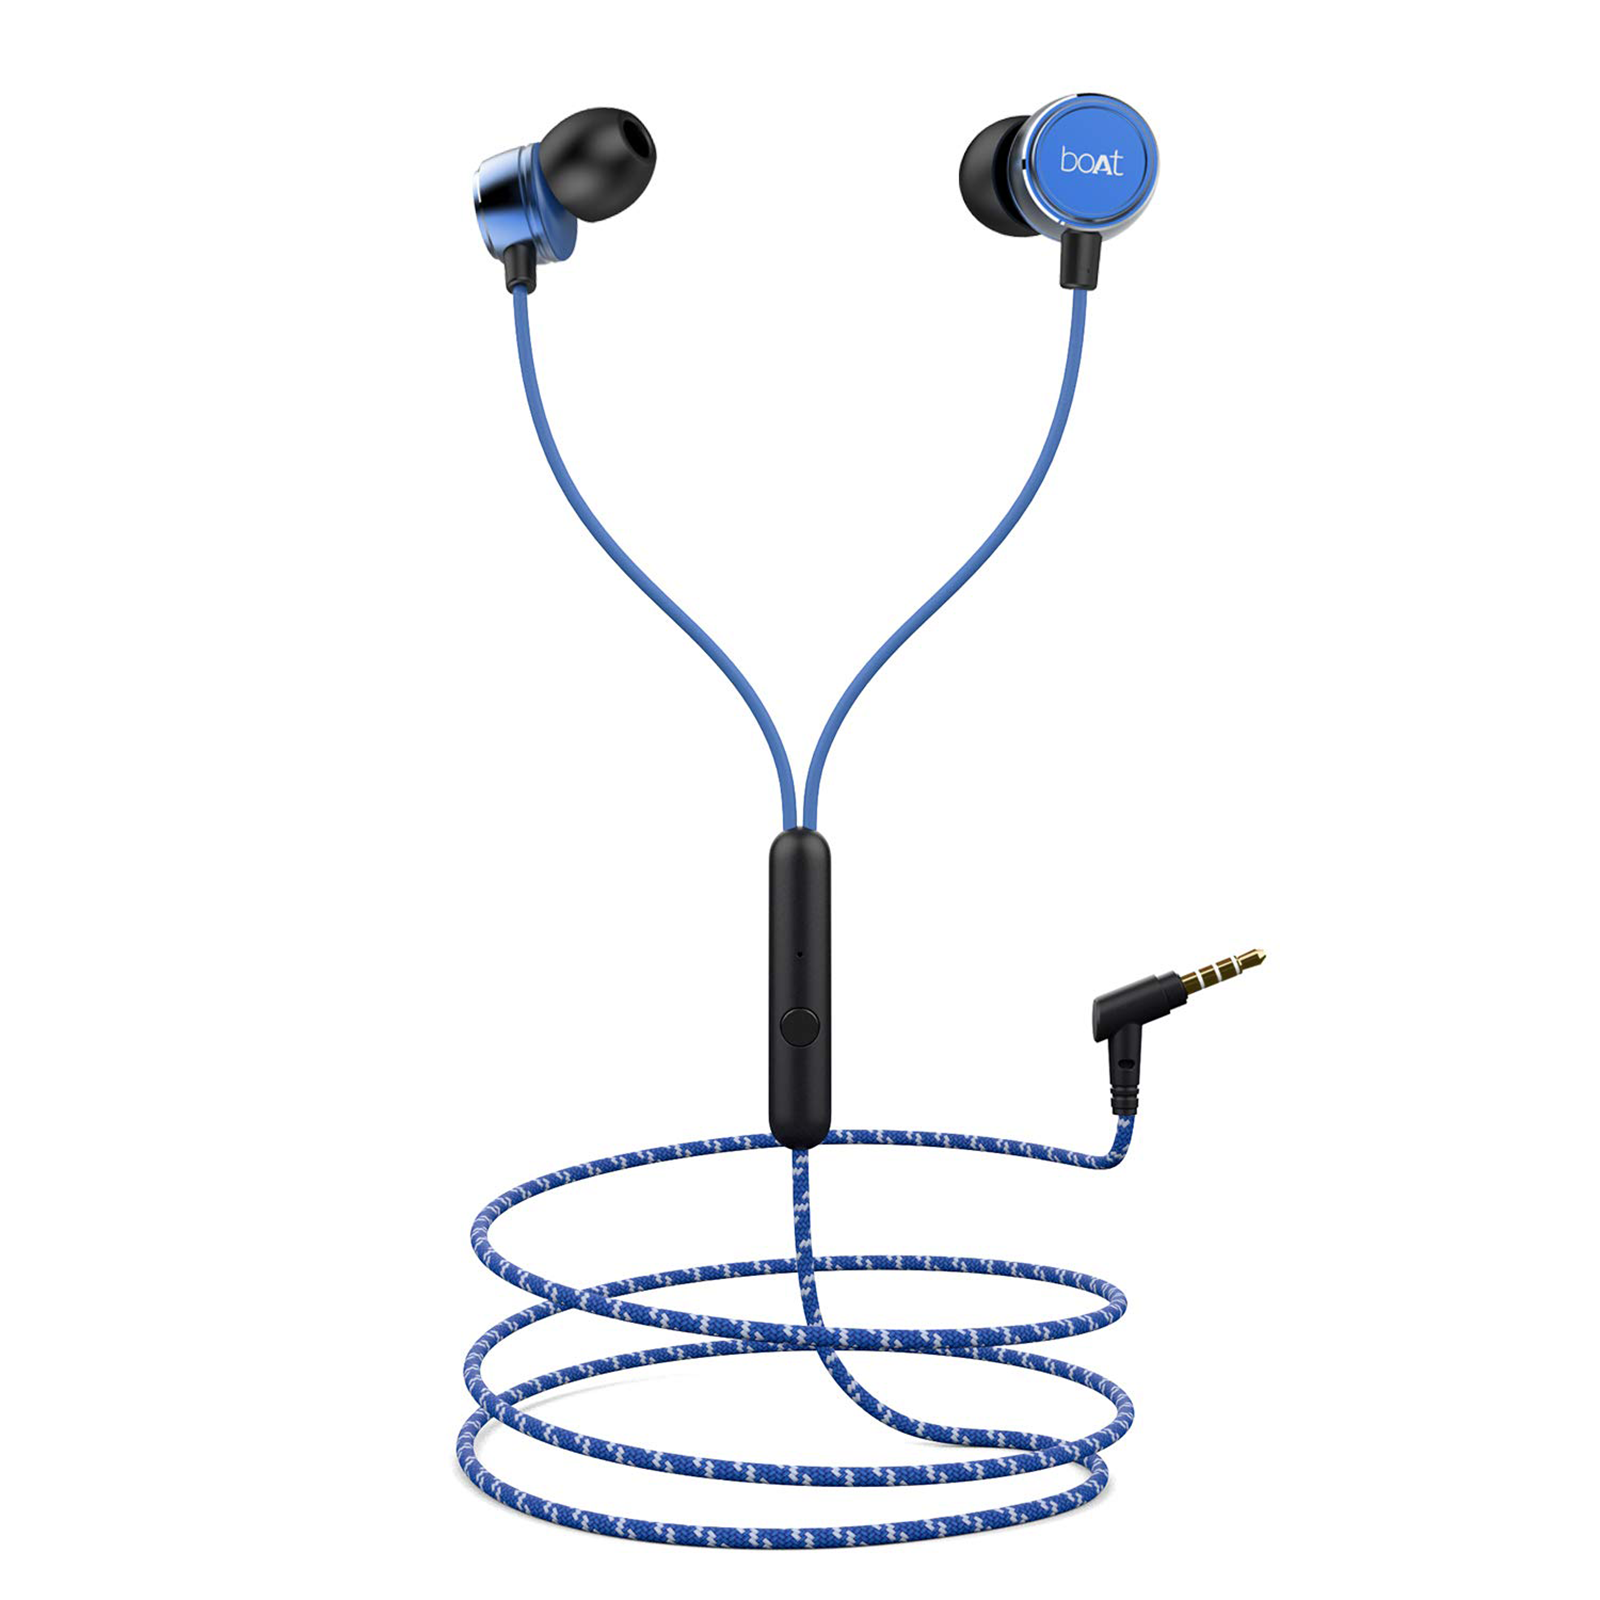 Buy boAt In-Ear Wired Earphone with Mic(Premium Metallic Finish, Bassheads 182, Jazzy Blue) Online_1